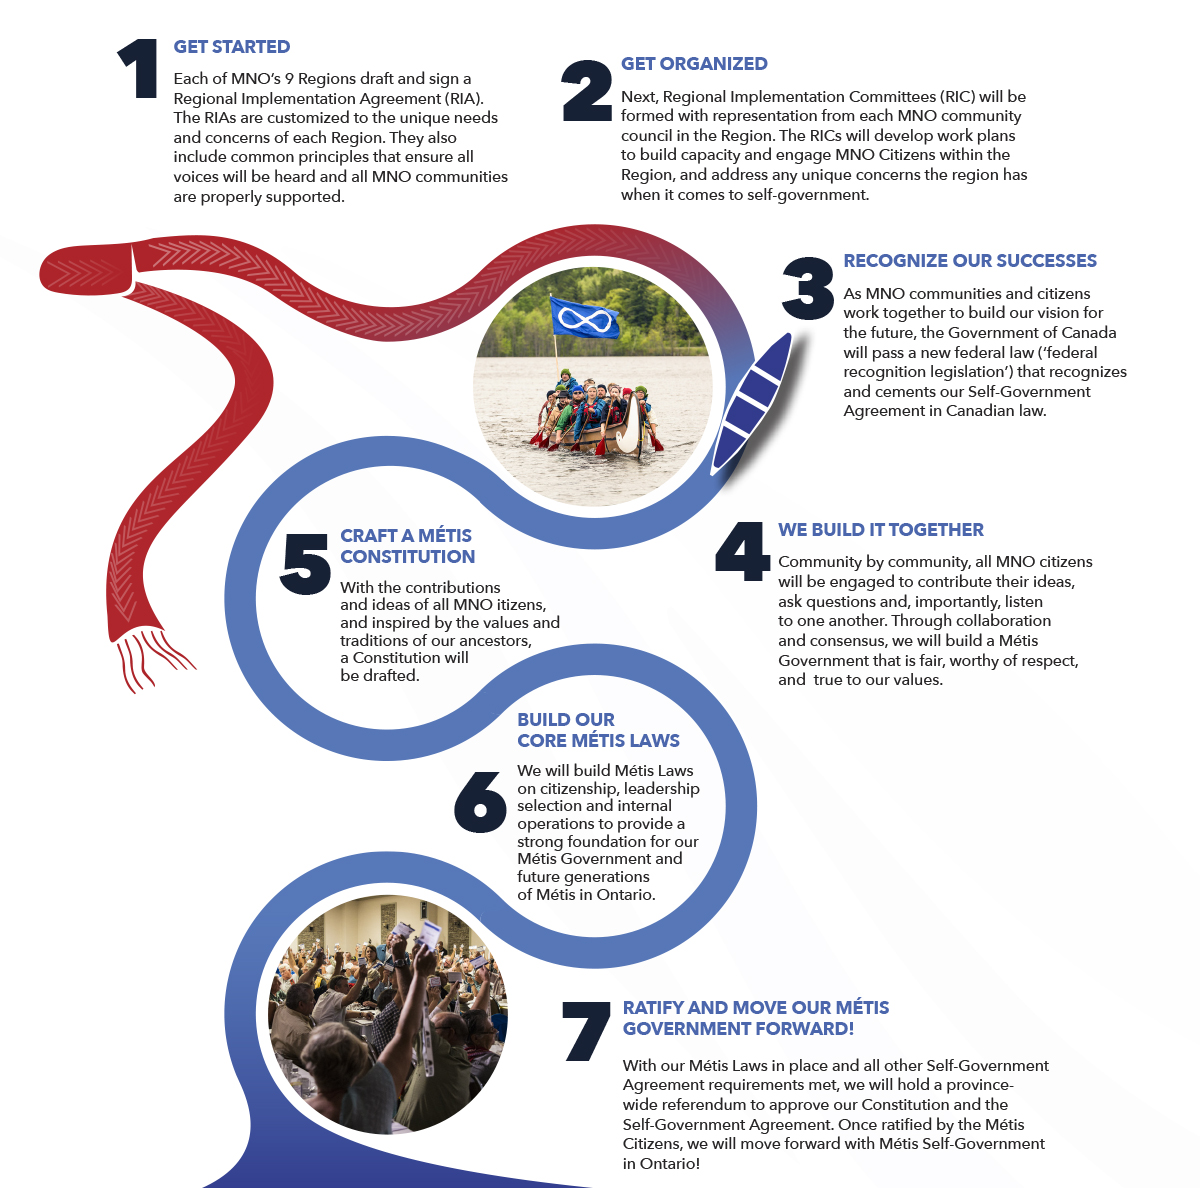 An infographic showing the steps to self-government